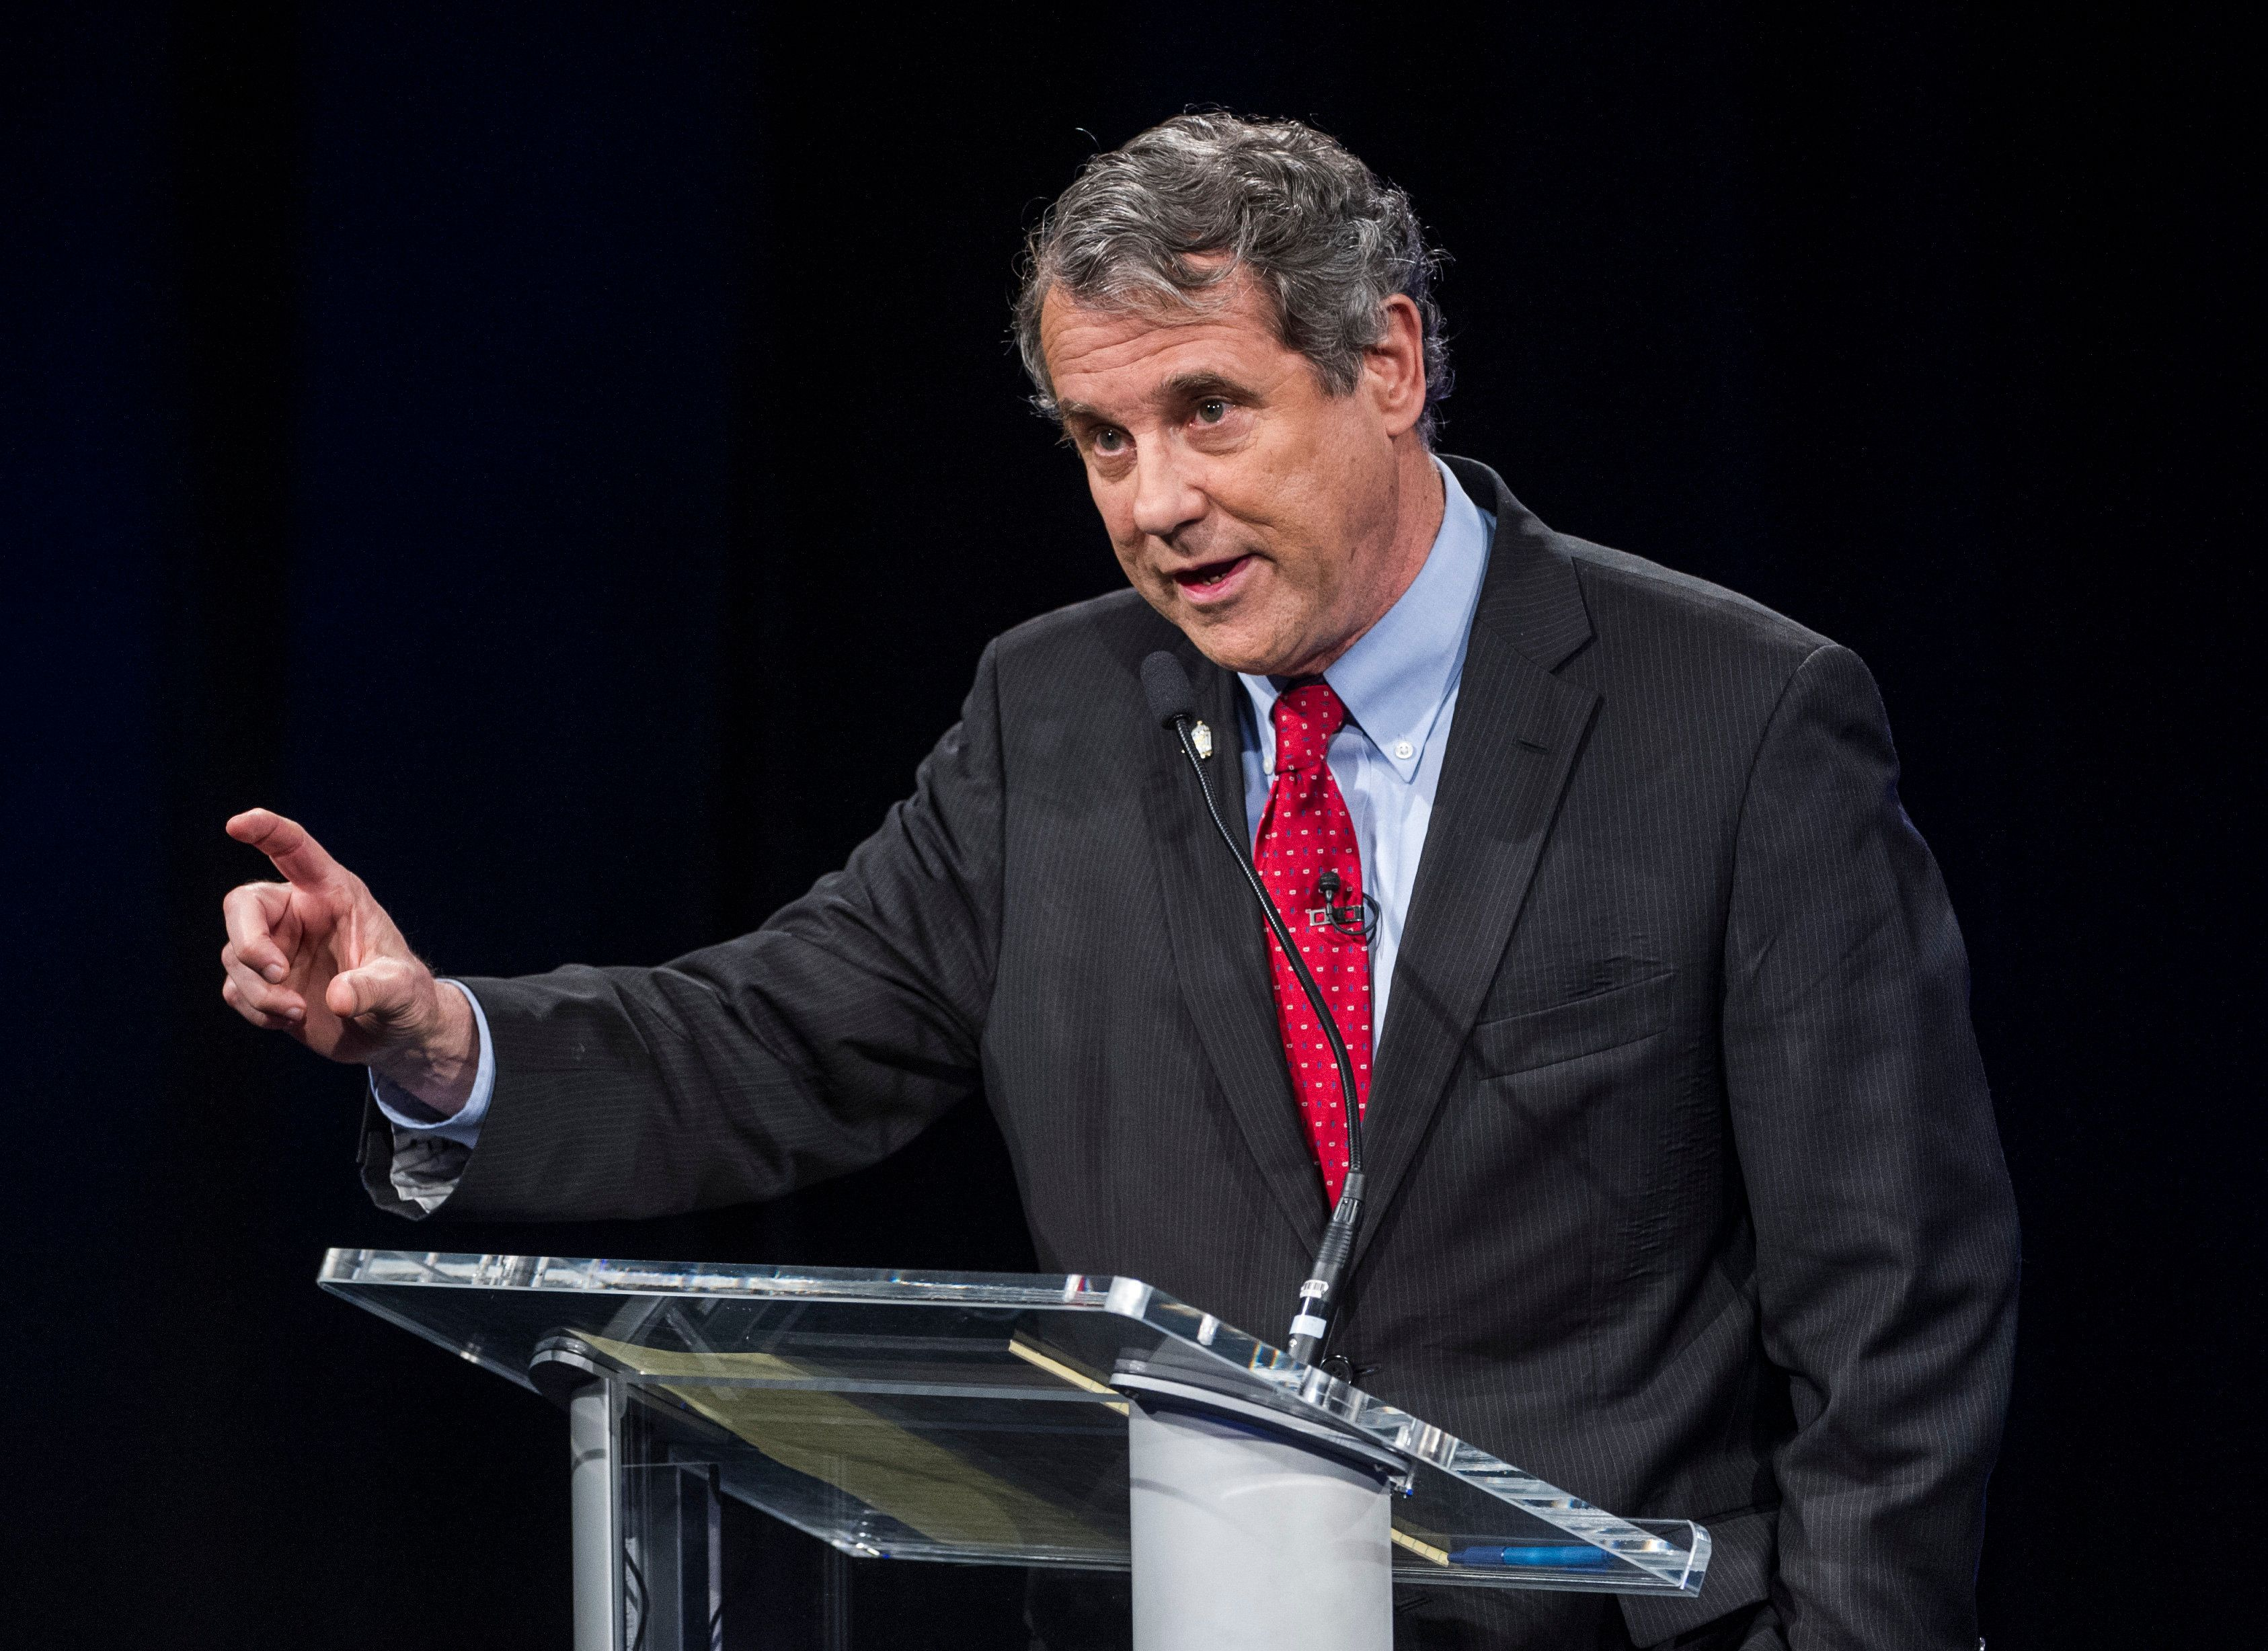 Ohio Sen. Sherrod Brown won re-election, defeating Republican challenger Rep. Jim Renacci.